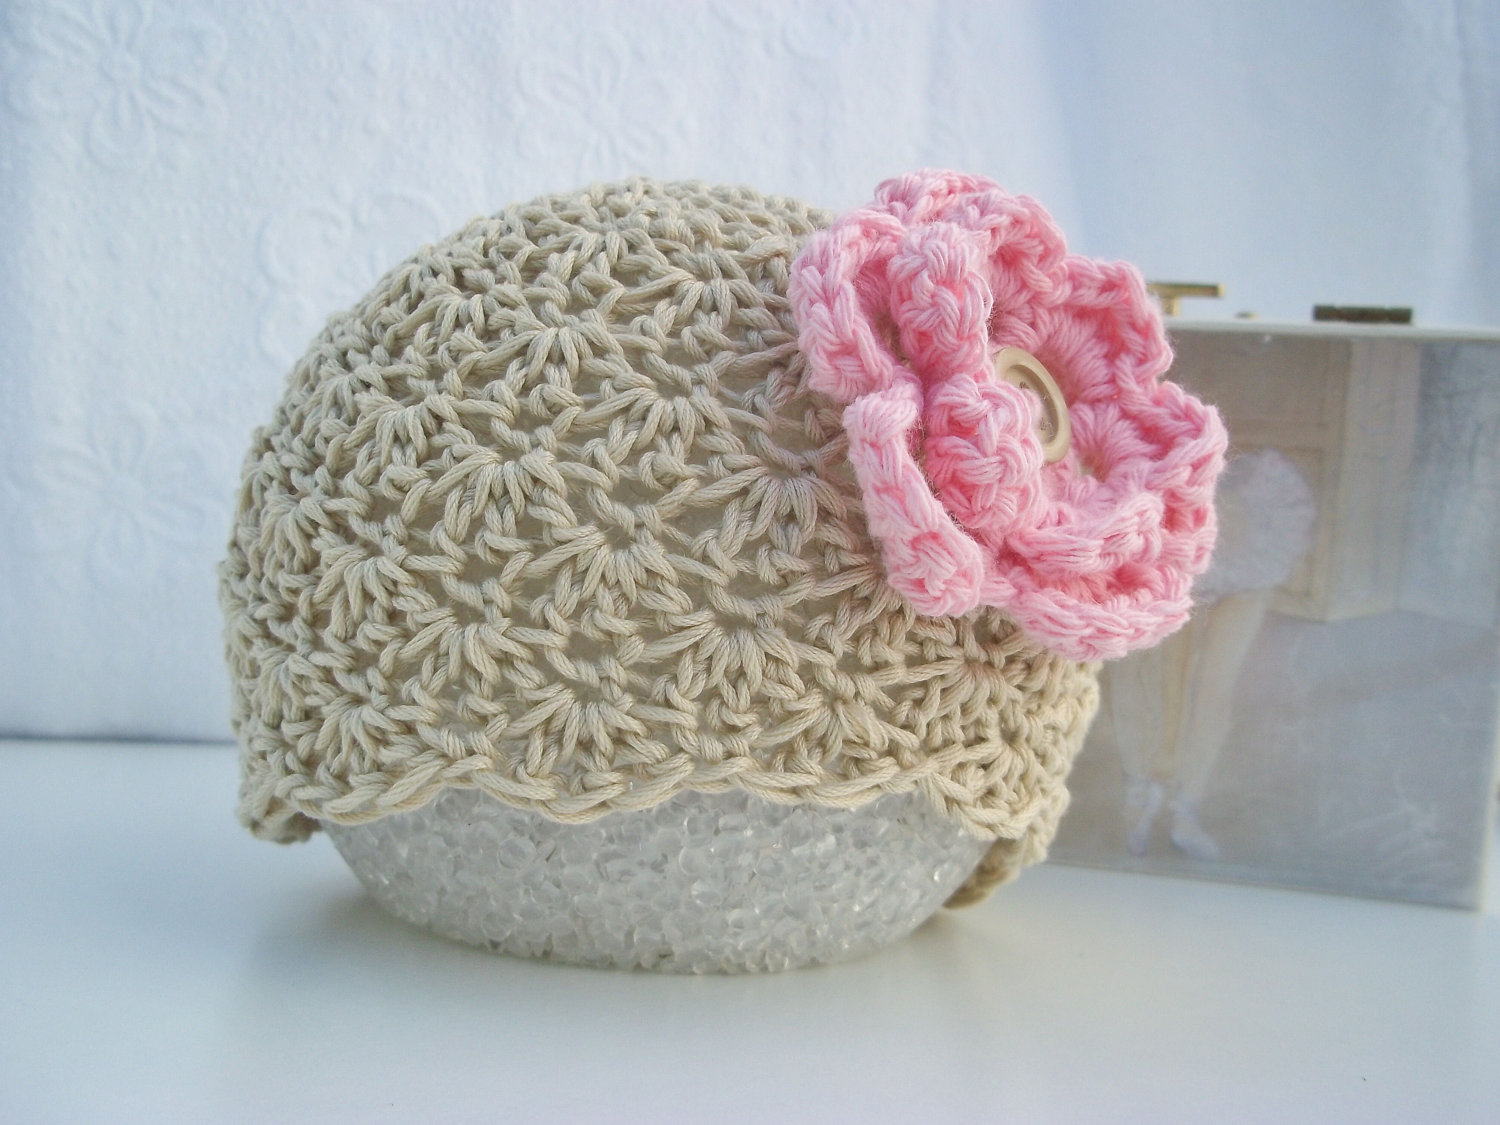 Free Crochet Patterns For A Baby Blanket : Crochet baby hat Baby girl hat Newborn baby hat Beige Tan ...